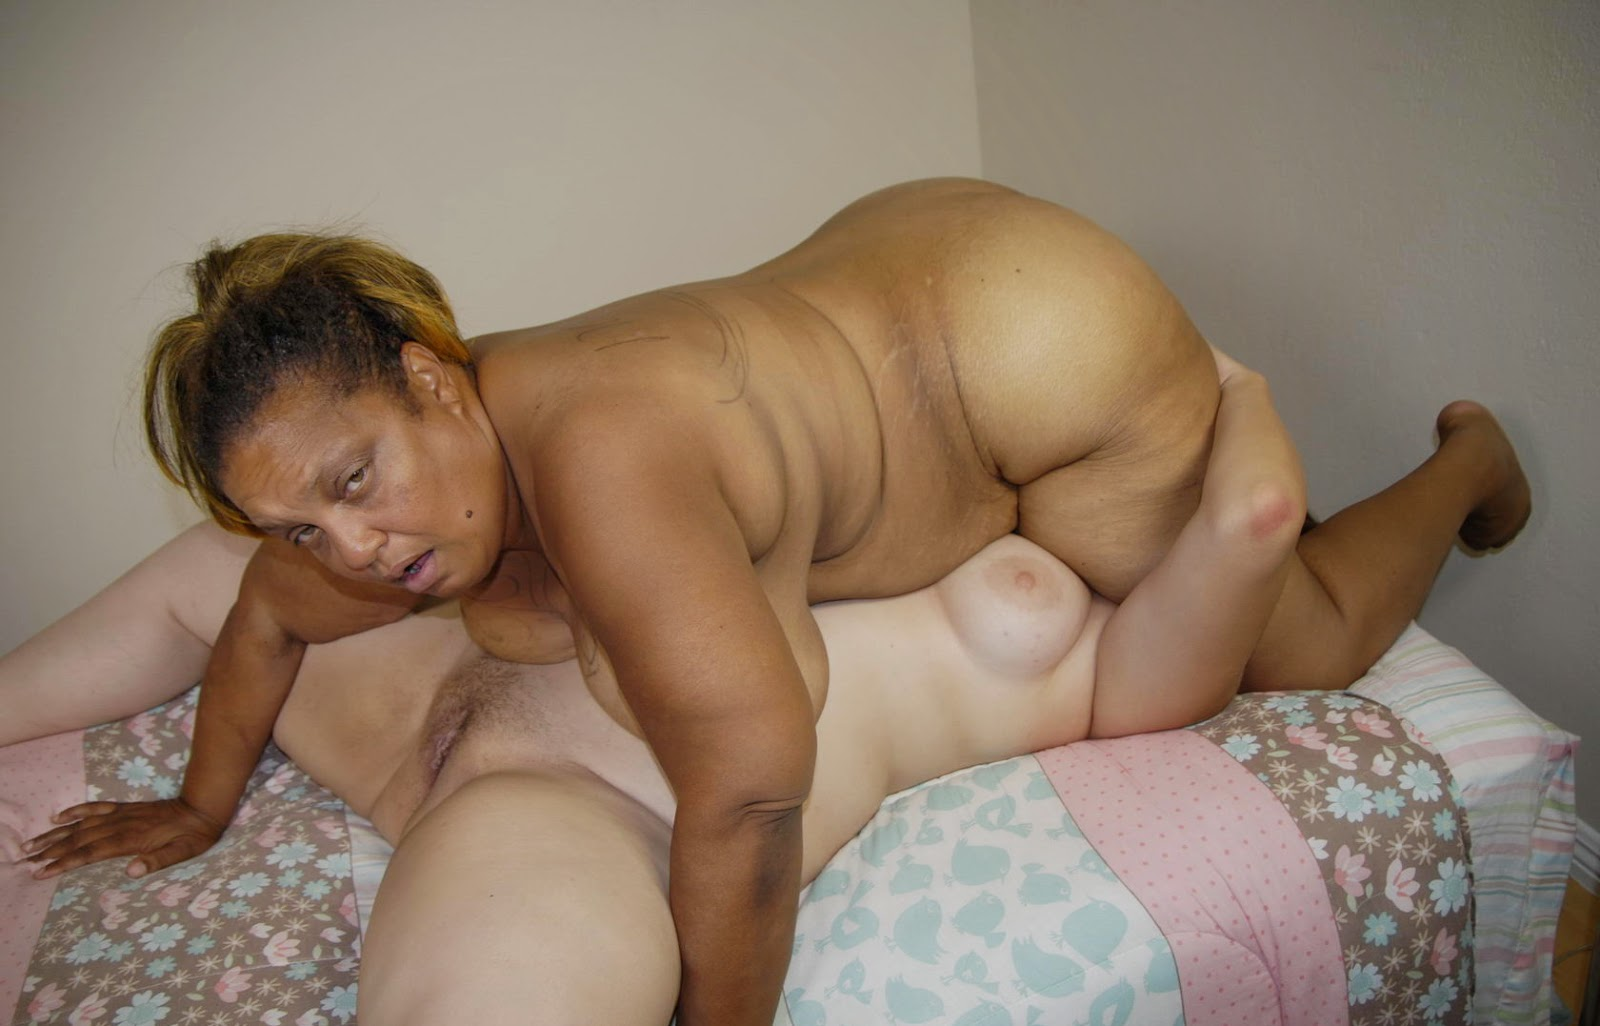 Love ebony lesbian thick just